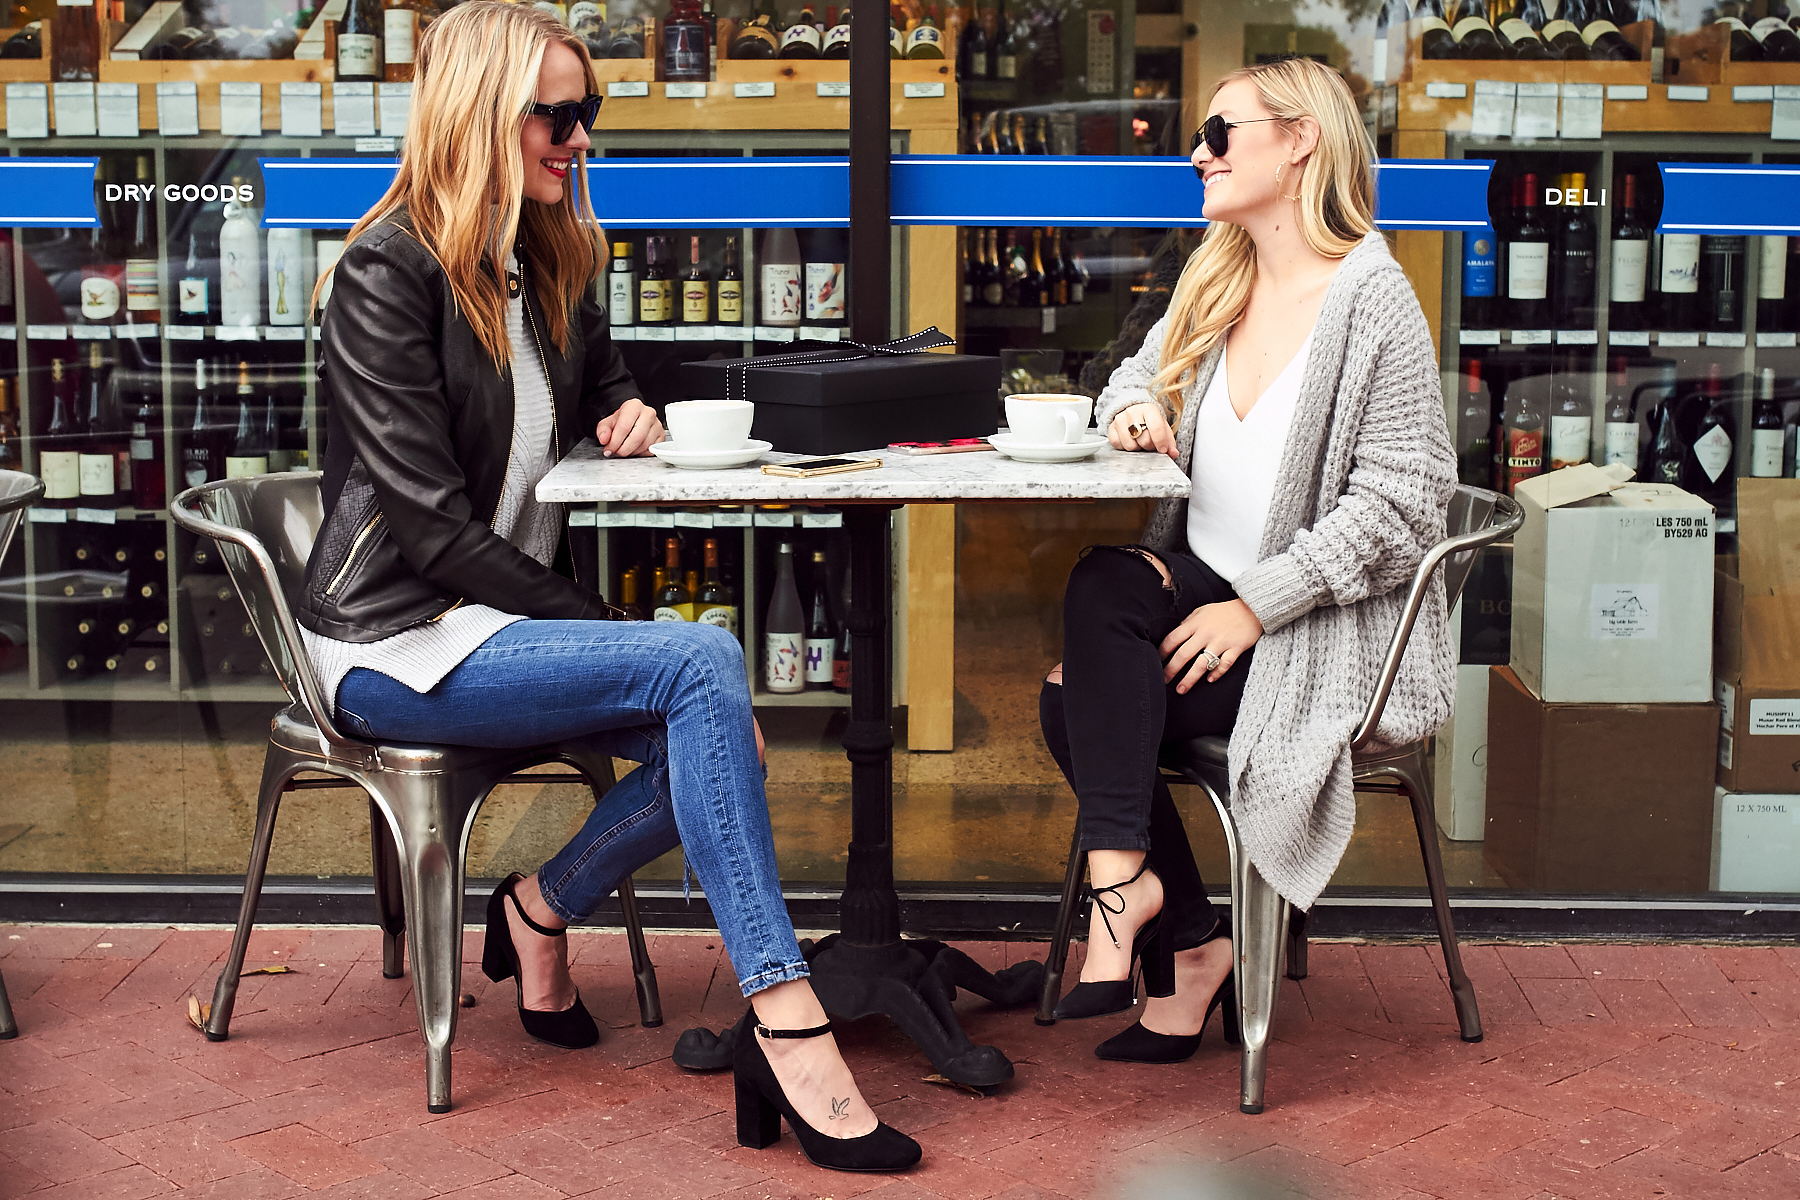 Fall Outfit, Black Leather Jacket, Denim Skinny Jeans, Black Pumps, Coffee Shop